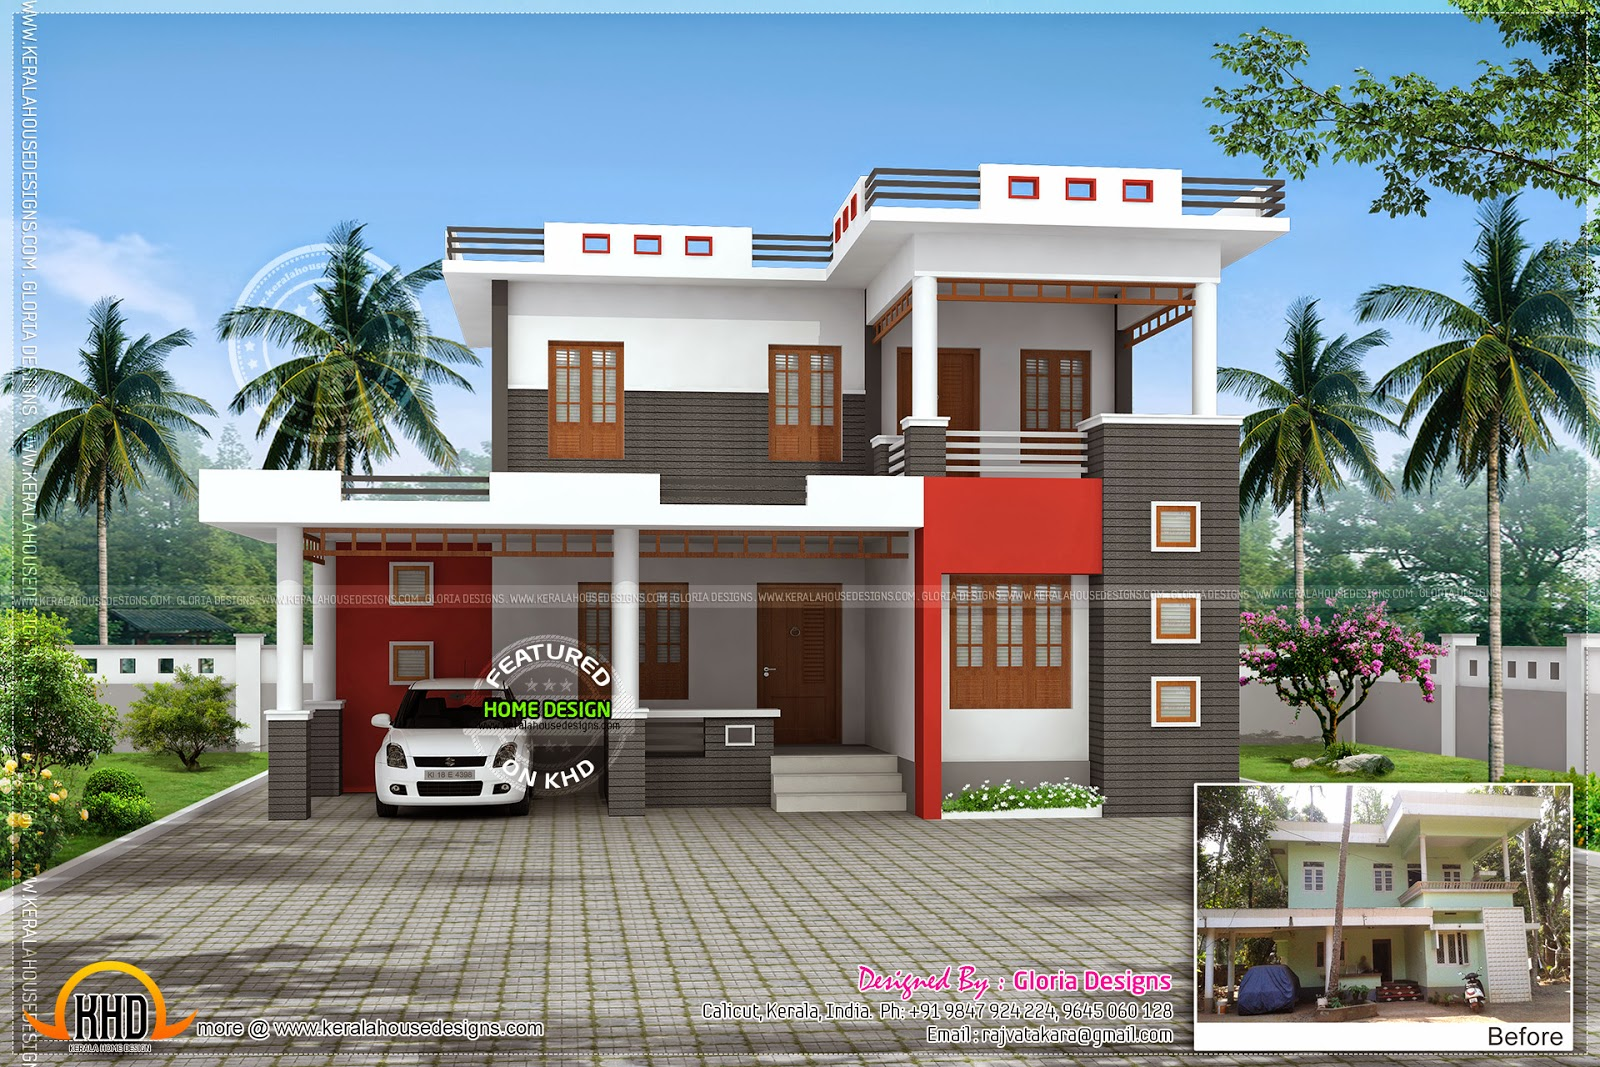 Renovation 3d model for an old house kerala home design for Good house photos